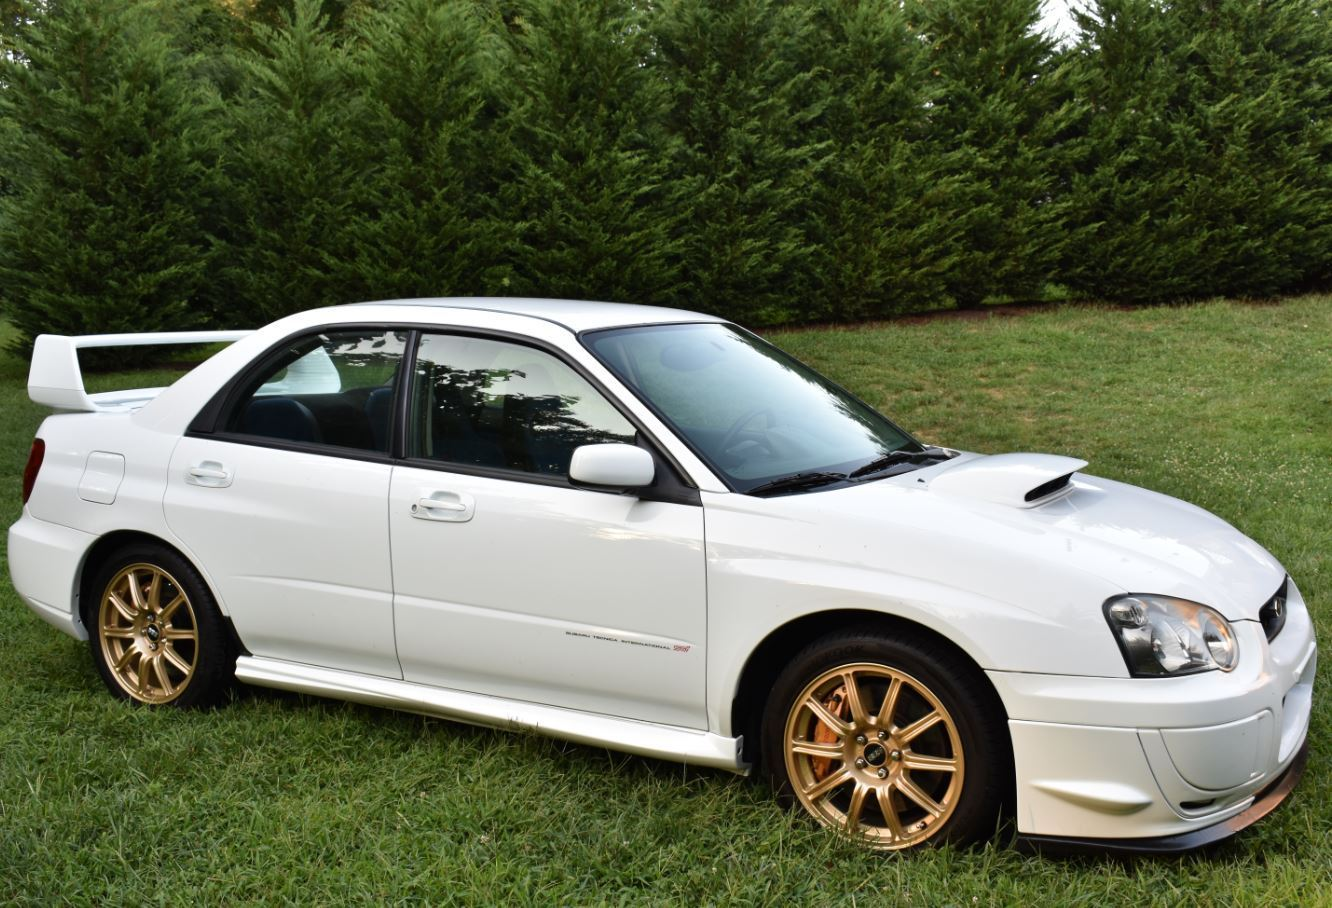 daily turismo boosted rally machine 2004 subaru impreza. Black Bedroom Furniture Sets. Home Design Ideas